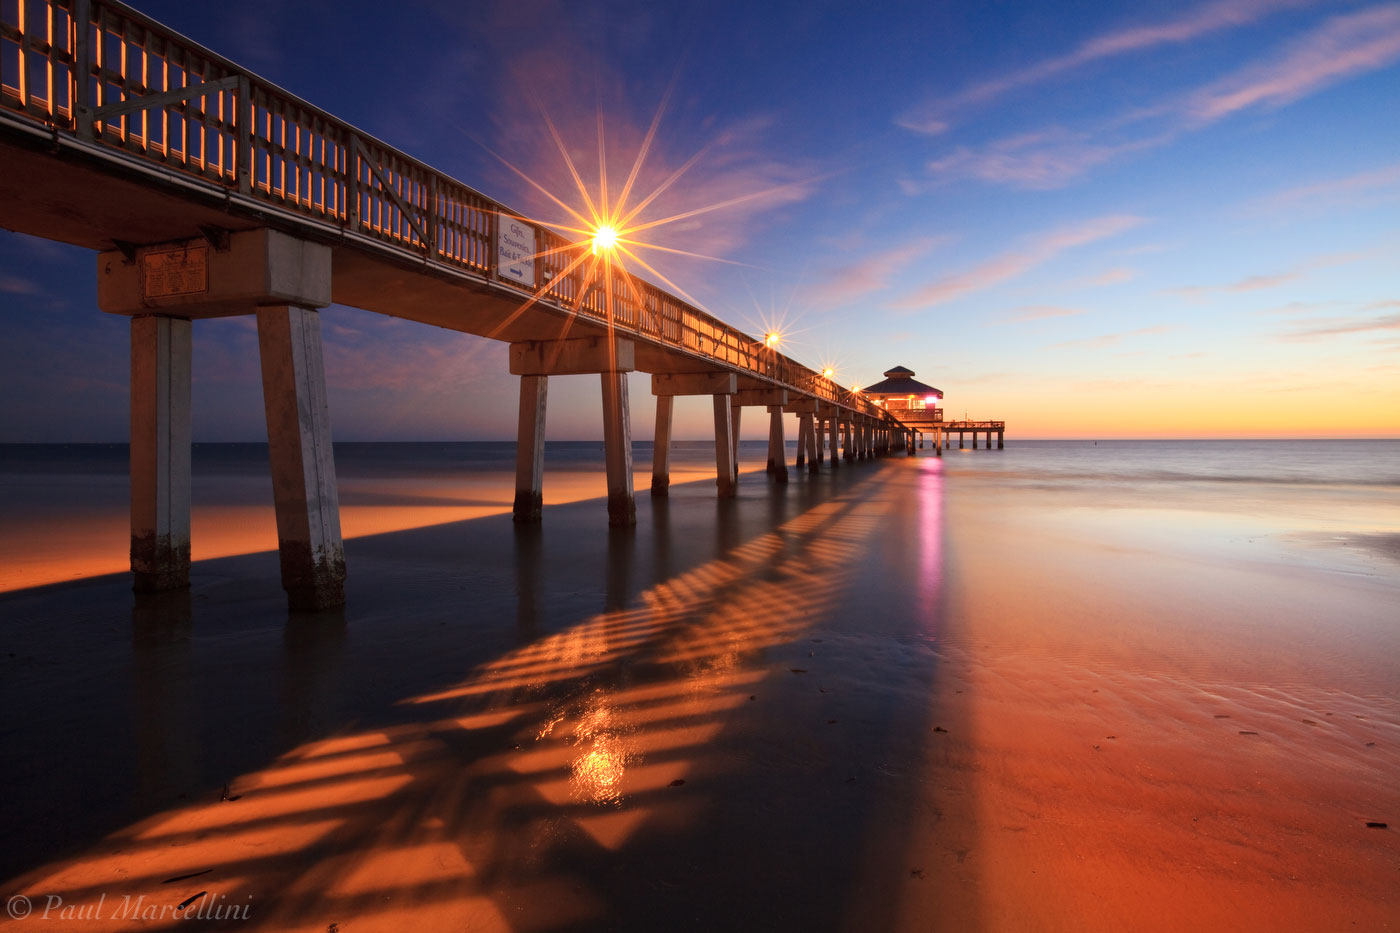 ft. myers beach pier, twilight, florida, south florida, nature, photography, photo